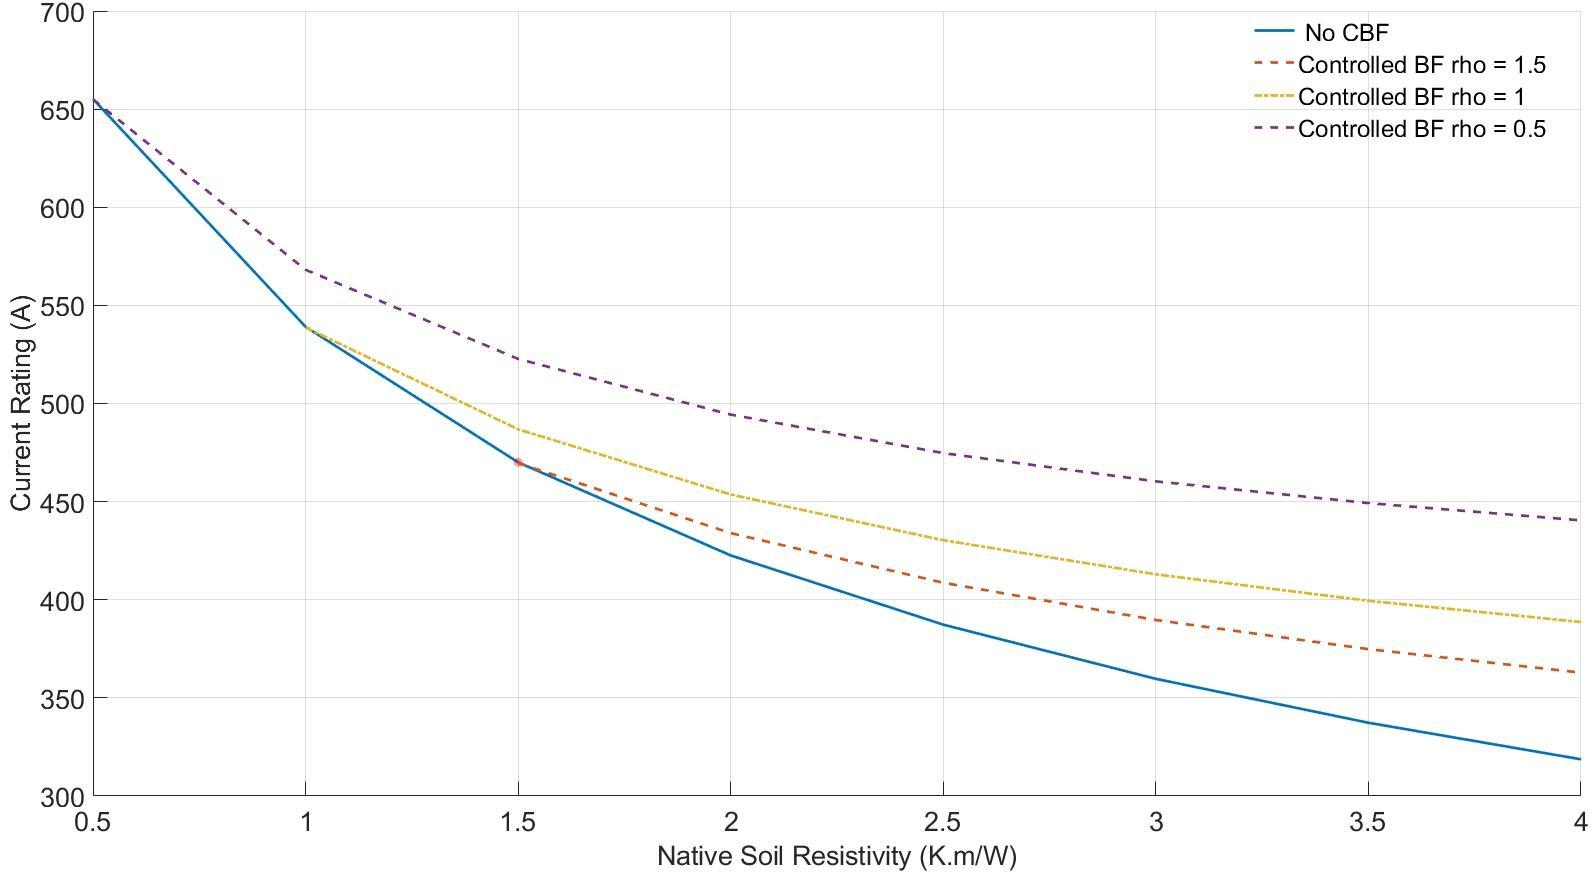 Figure 4. Current rating of cables vs native soil thermal resistivity for various control backfills